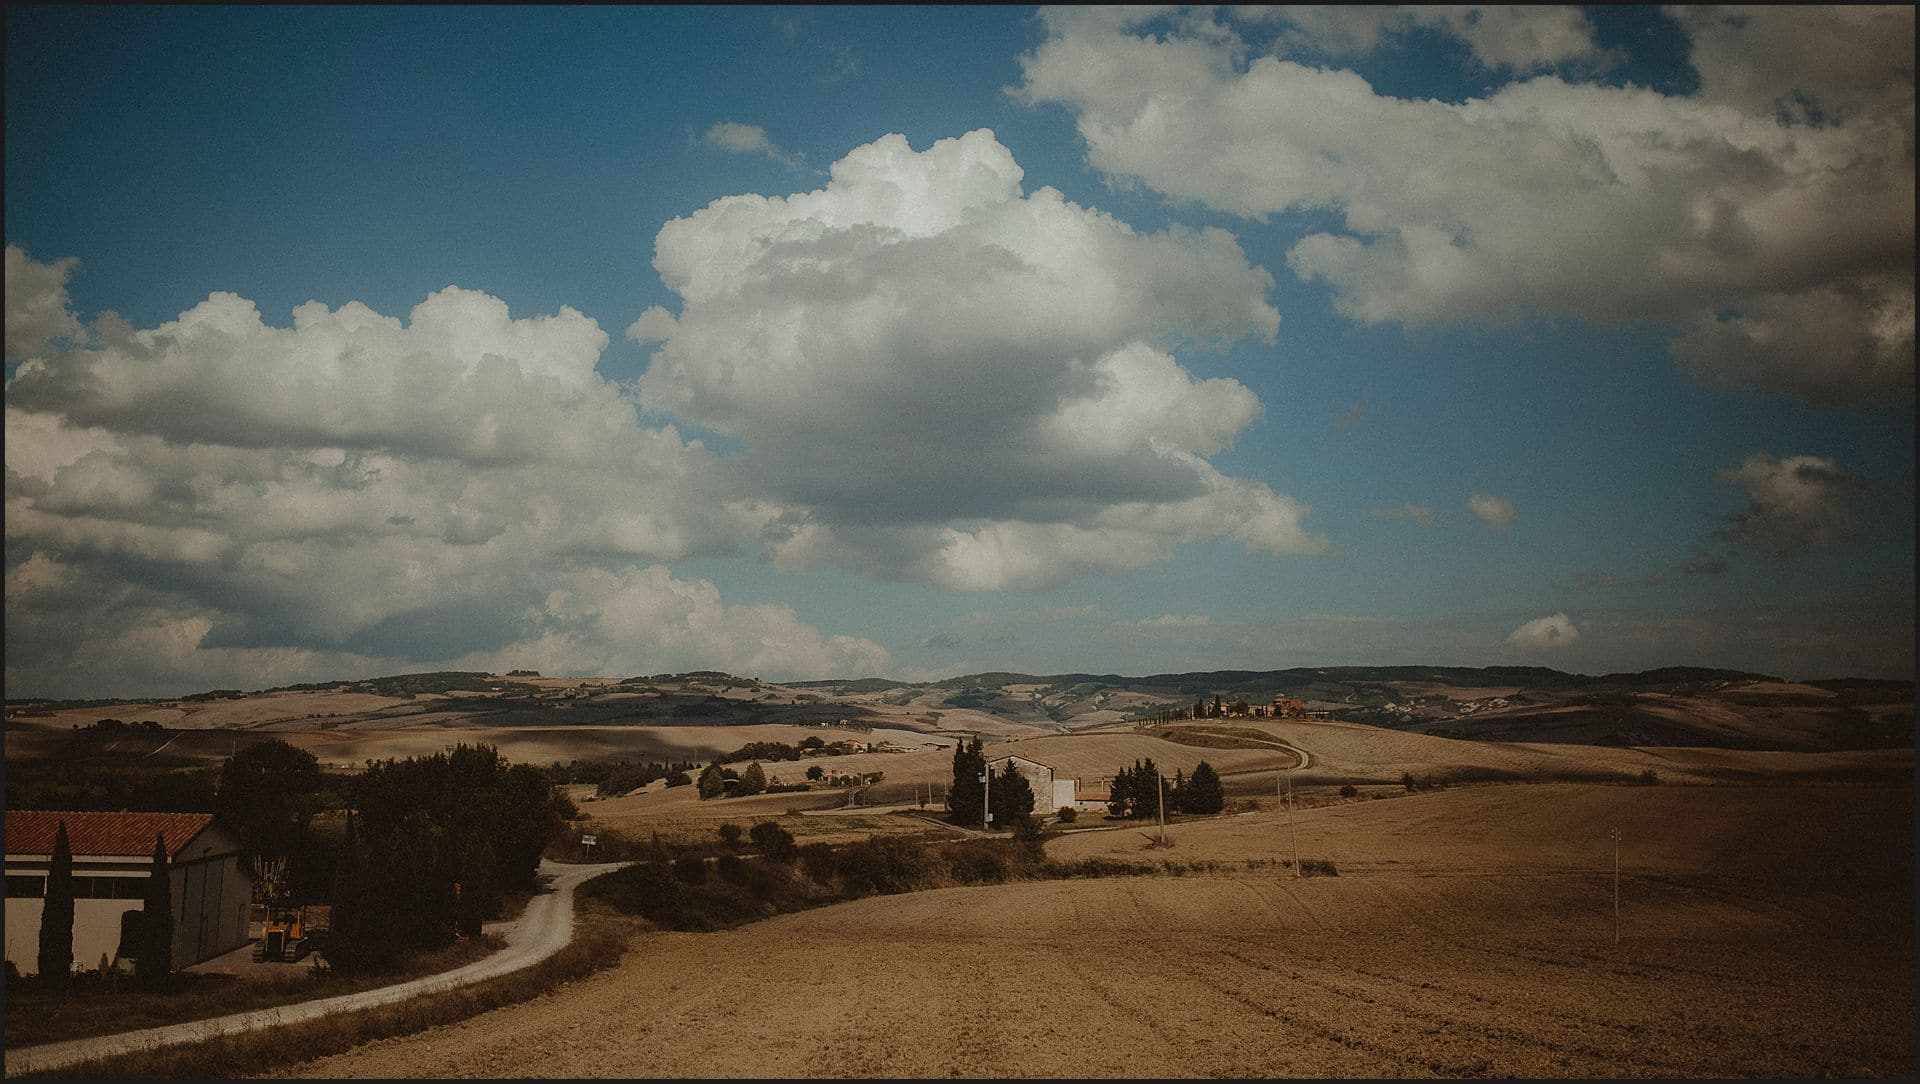 locanda in tuscany, wedding, siena, landscape, panorama, italy, val d'orcia